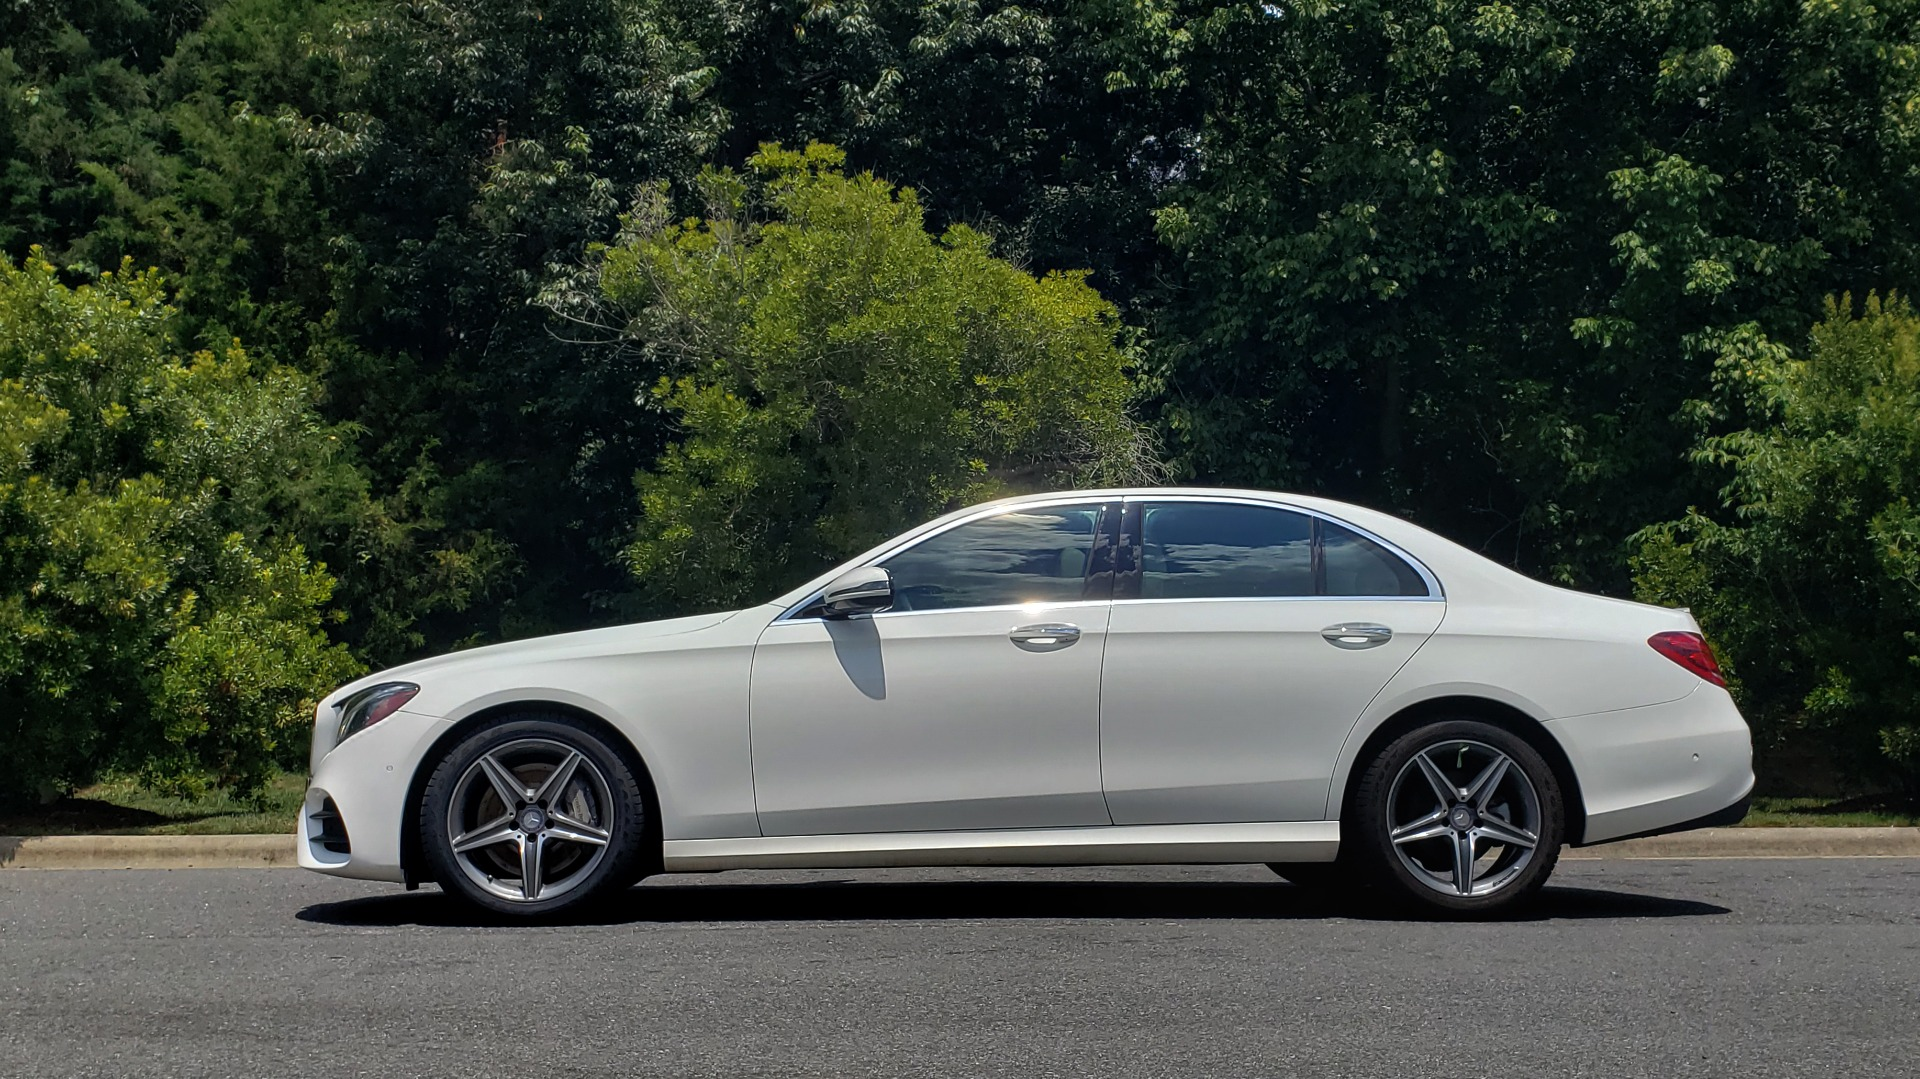 Used 2017 Mercedes-Benz E-CLASS E 300 PREMIUM / SPORT / NAV / SUNROOF / HTD STS / BSM / REARVIEW for sale $27,995 at Formula Imports in Charlotte NC 28227 2